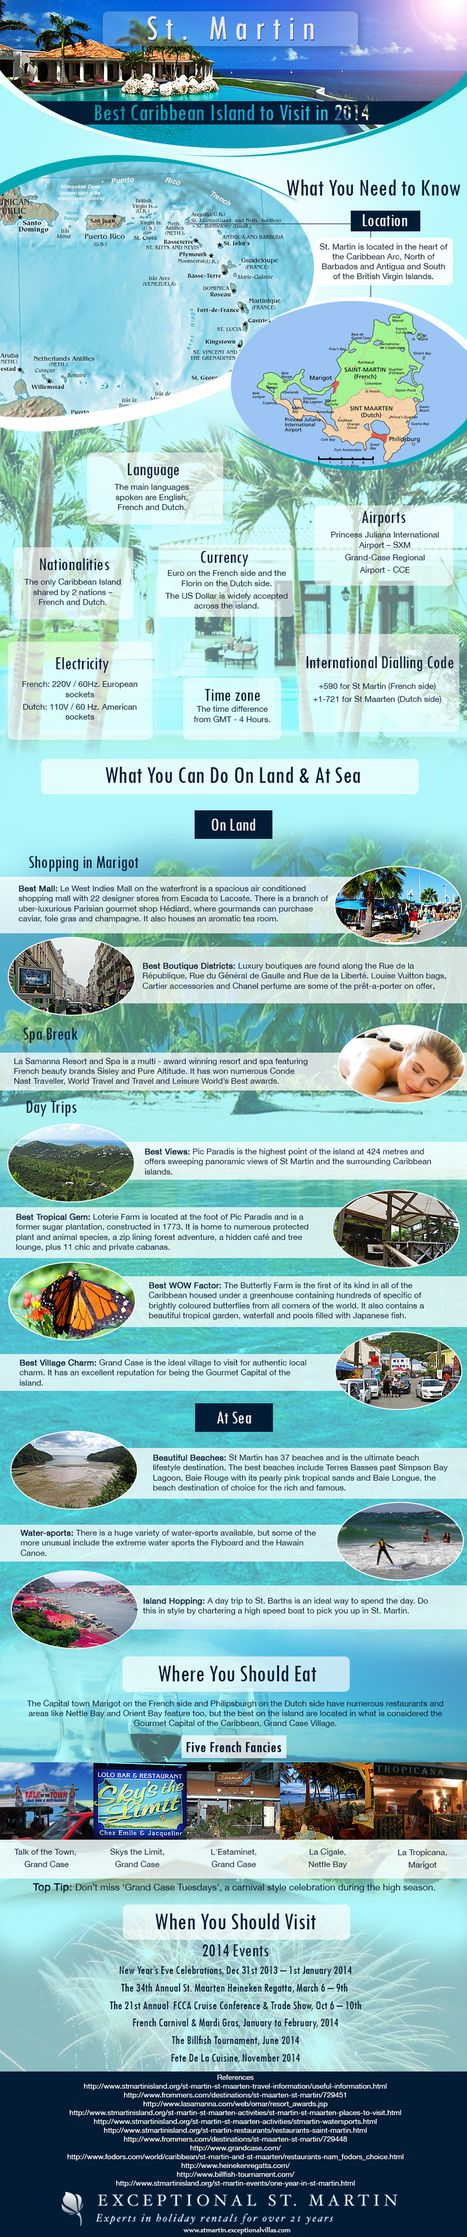 St. Martin Infographic | Caribbean Things To Do | Scoop.it